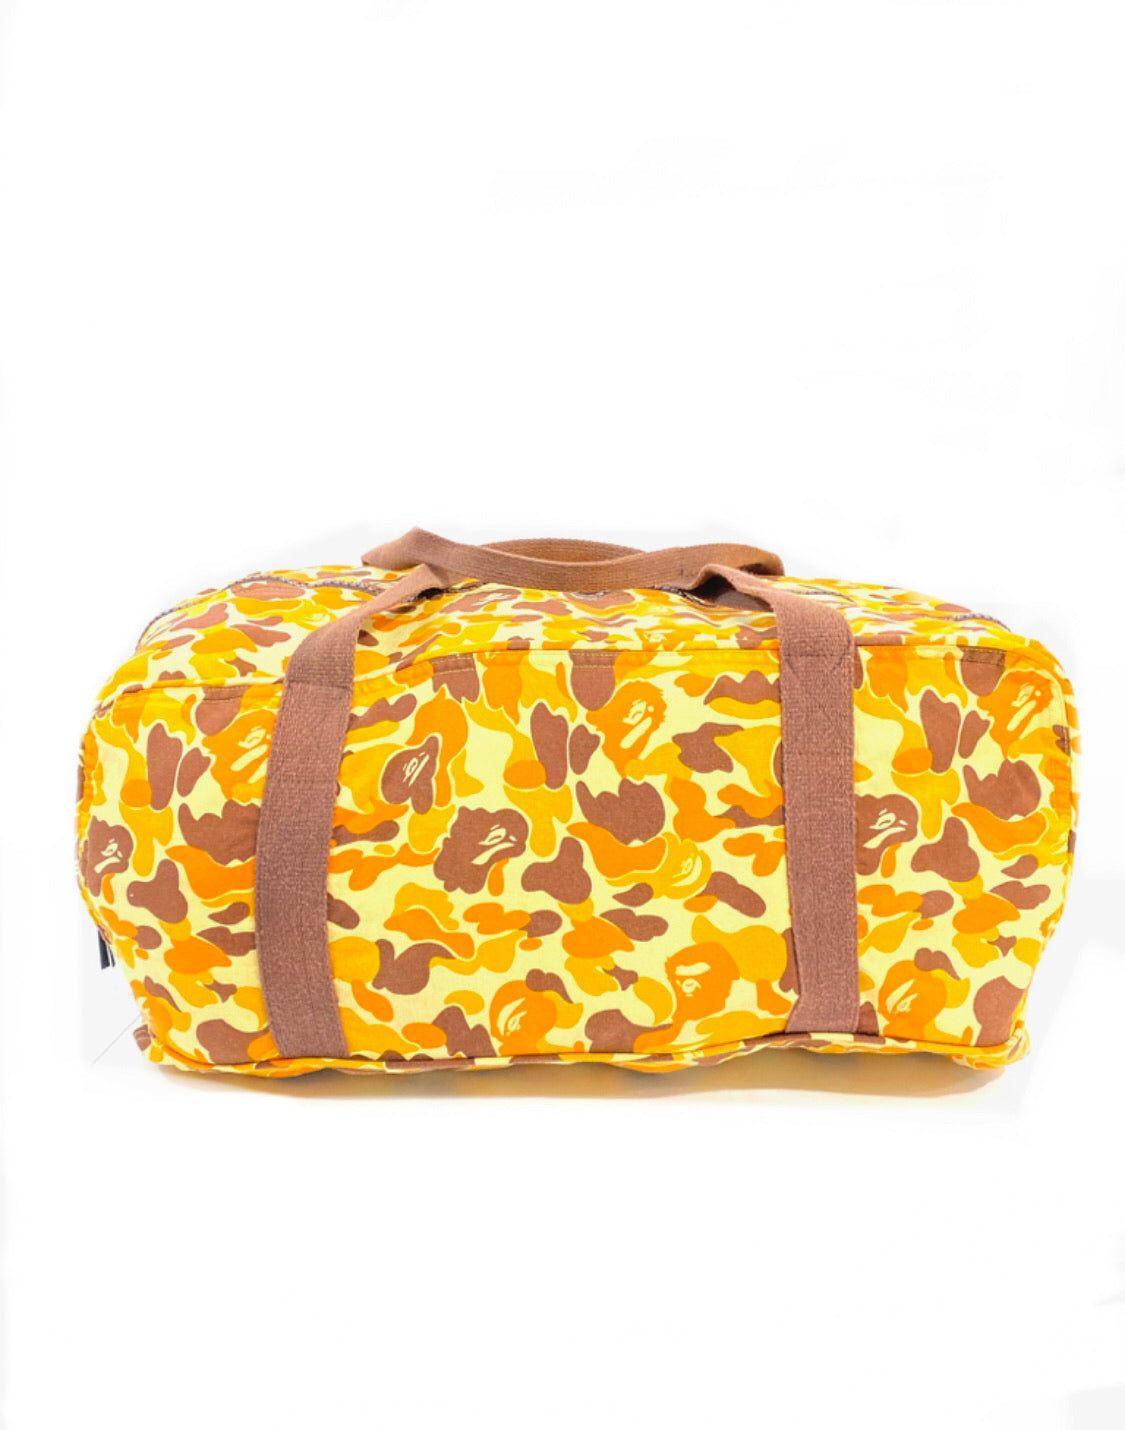 """Nigo Era"" A Bathing ape Camo Travel Bag"